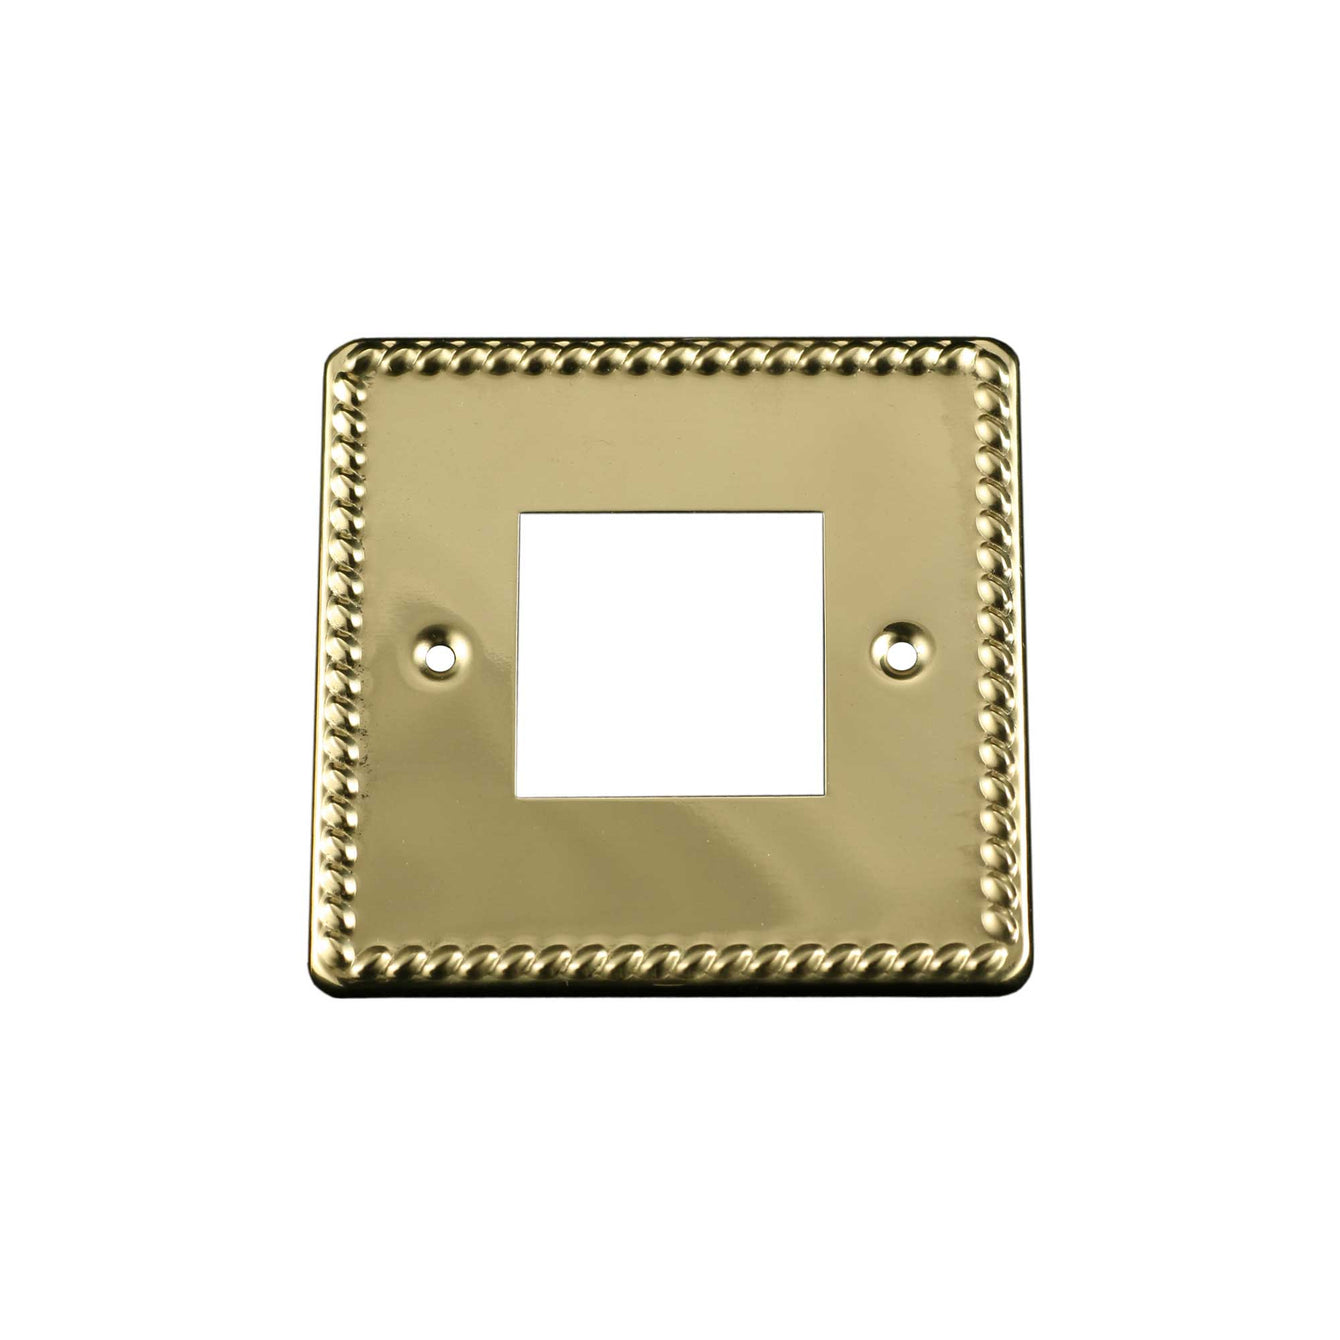 ElekTek Light Switch Conversion Cover Plate Georgian Brass Single Double